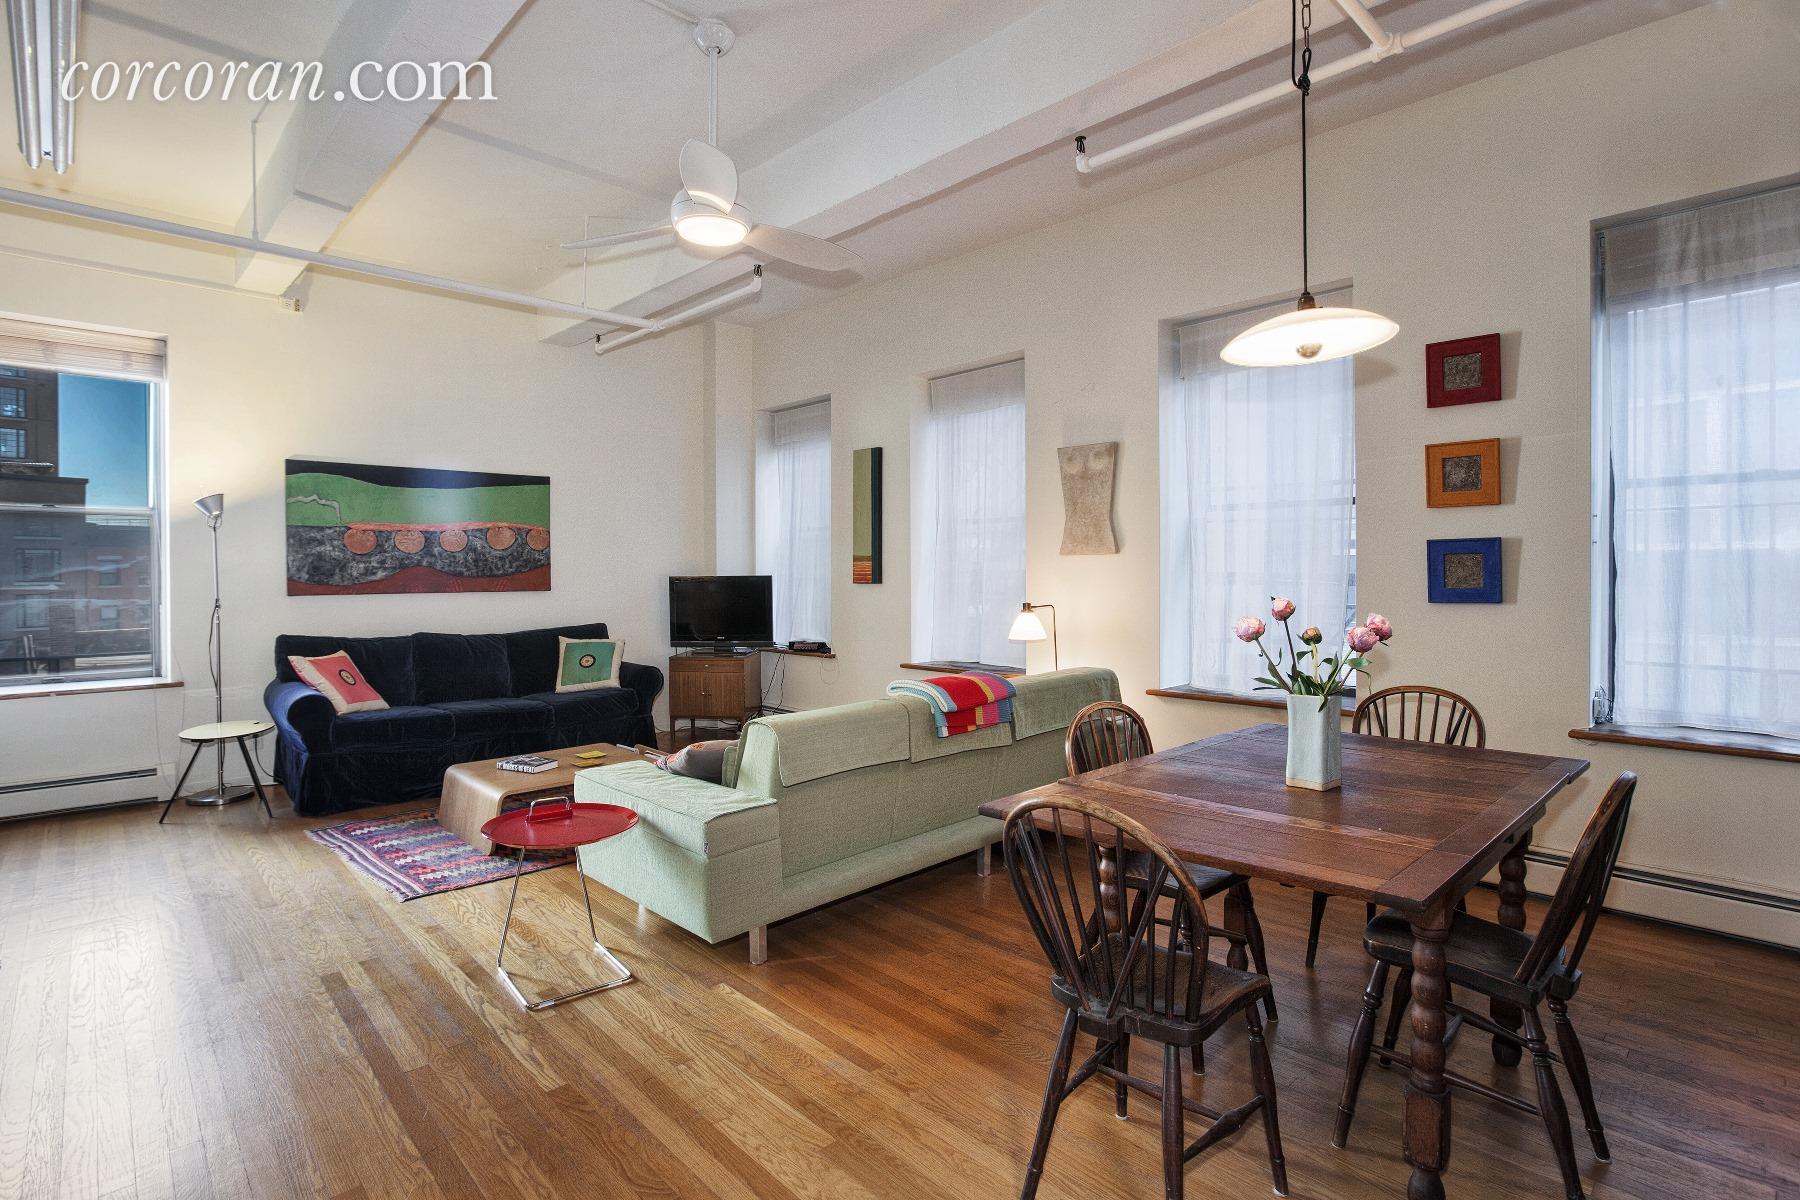 55 Great Jones Street, living room, loft, noho, co-op